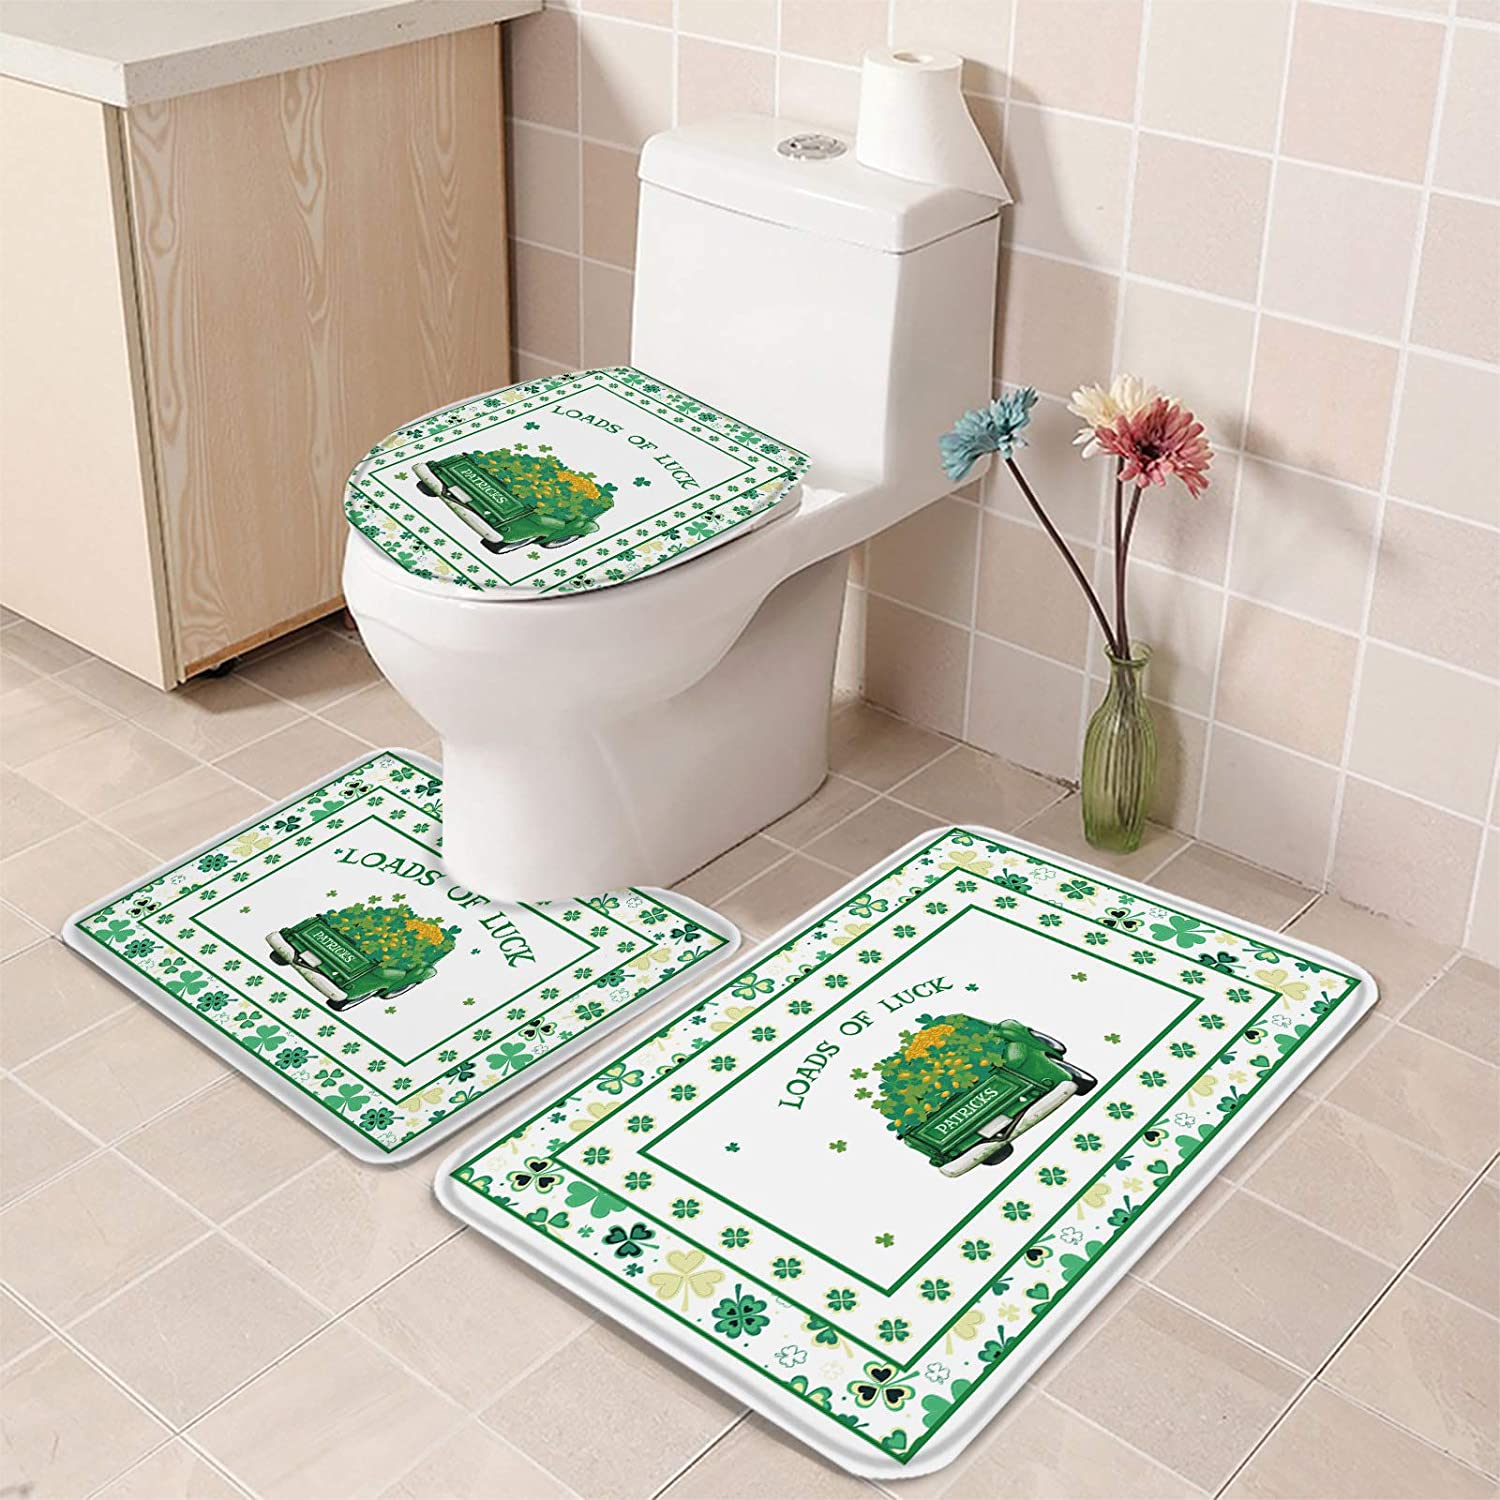 3 Piece Bathroom Rug Set St. Patrick's Day with Green Car Max Max 56% OFF 83% OFF Clover